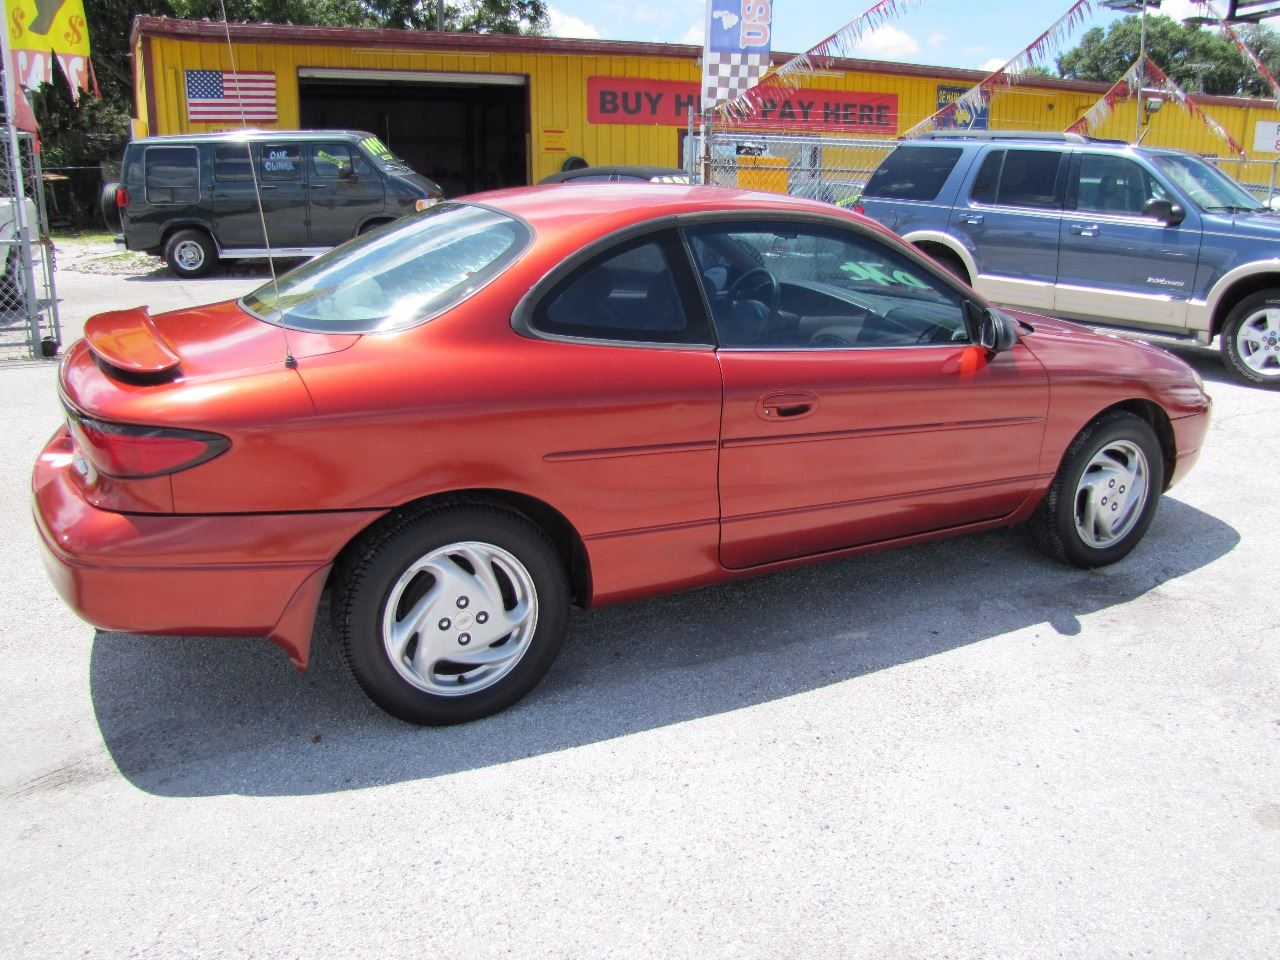 Ford ford zx2 : 1999 Ford Escort ZX2 Cool 2dr Coupe In Lakeland FL - HUGH WILLIAMS ...